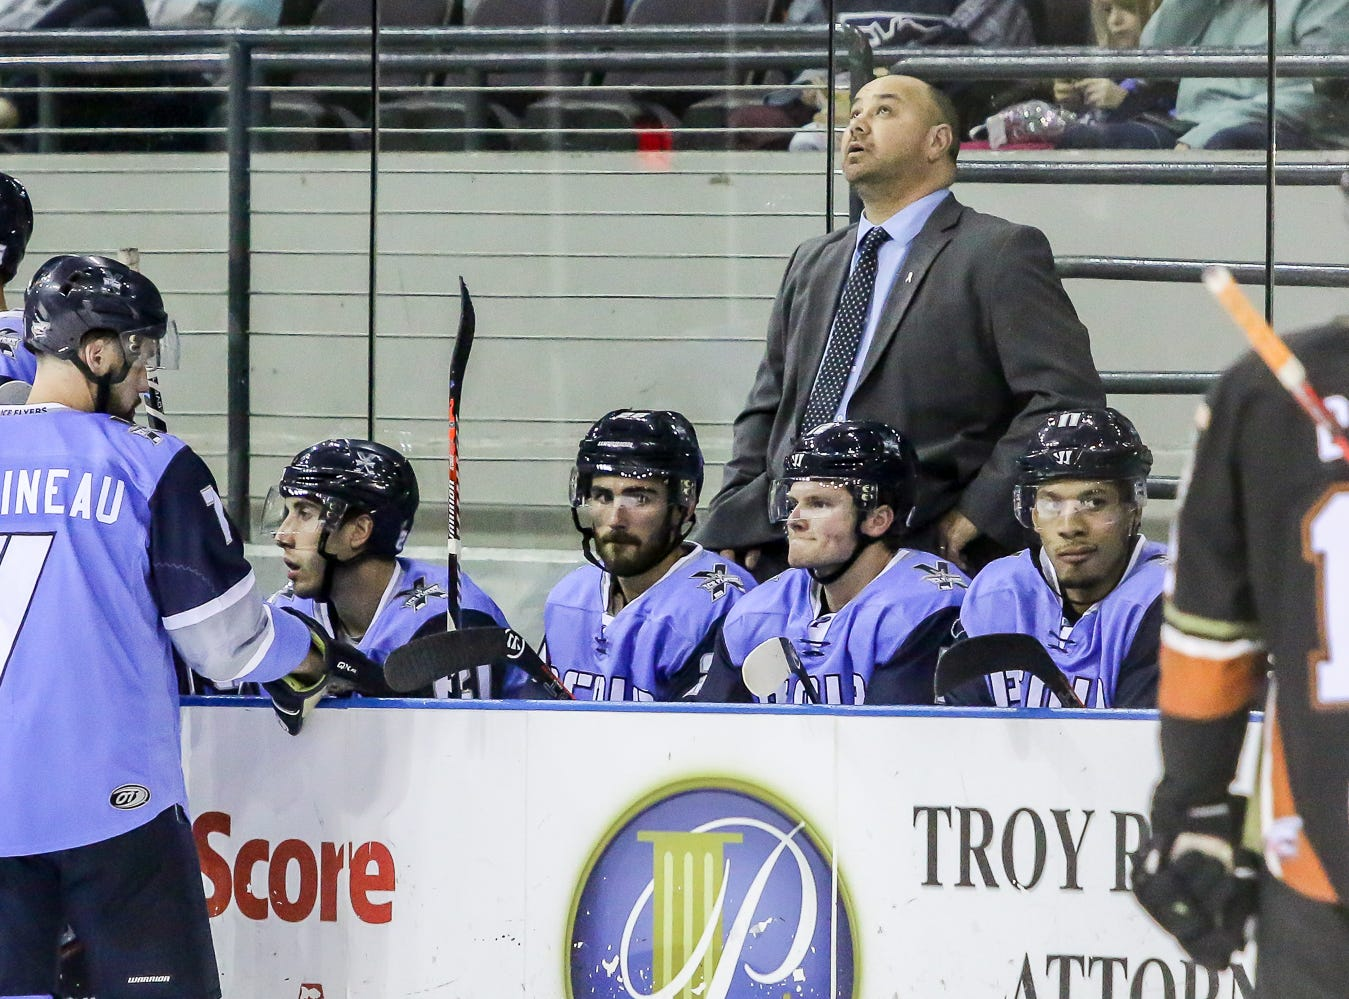 Ice Flyers head coach Rod Aldoff looks up at the scoreboard during a timeout in the game against Fayetteville at the Pensacola Bay Center on Saturday, January 5, 2019.